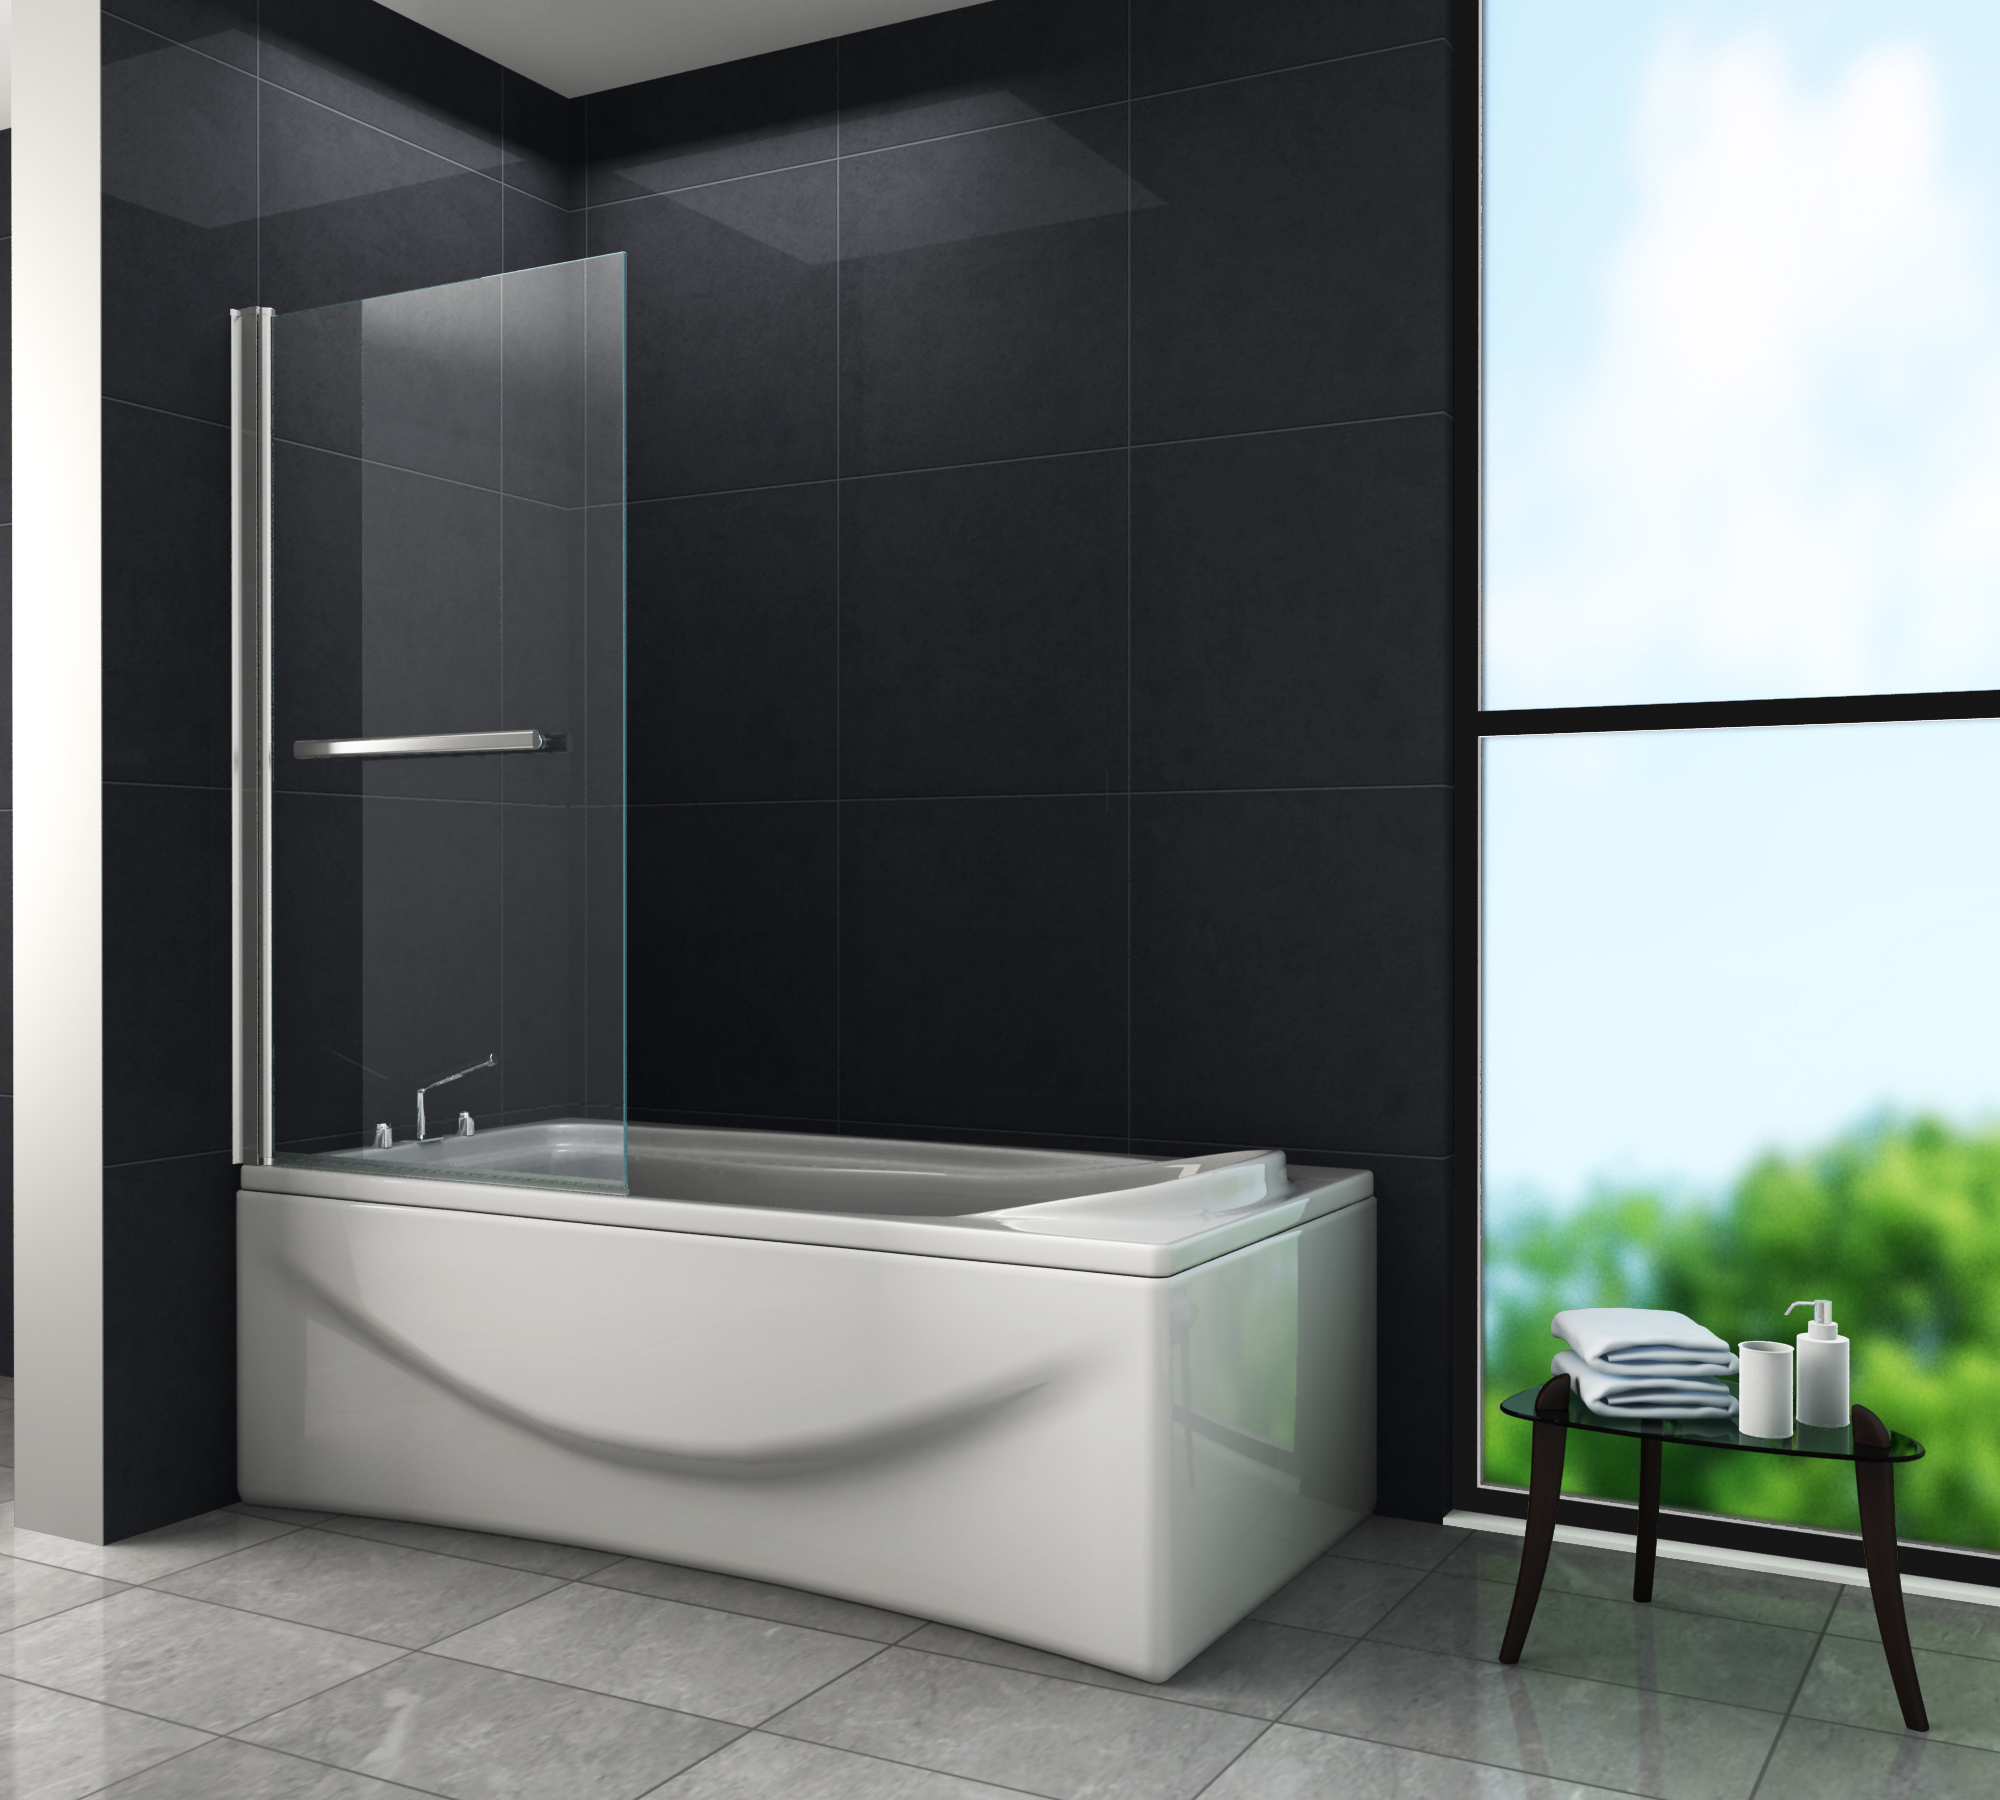 duschtrennwand quodo 80 x 140 badewanne glasdeals. Black Bedroom Furniture Sets. Home Design Ideas